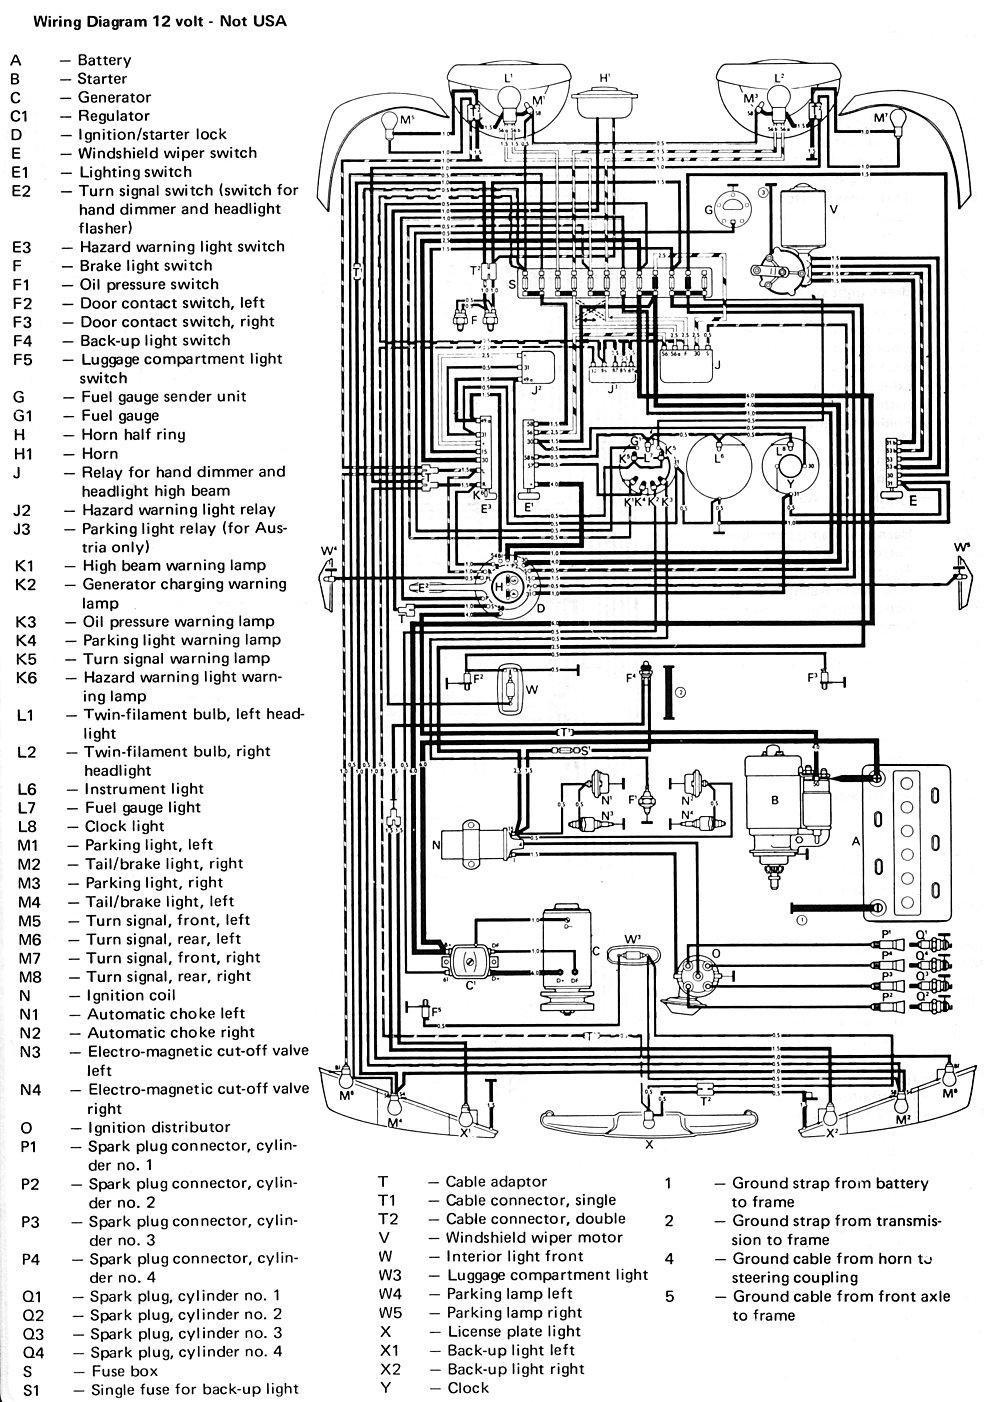 1967 vw beetle wiring diagram moreover 67 vw beetle wiring diagram